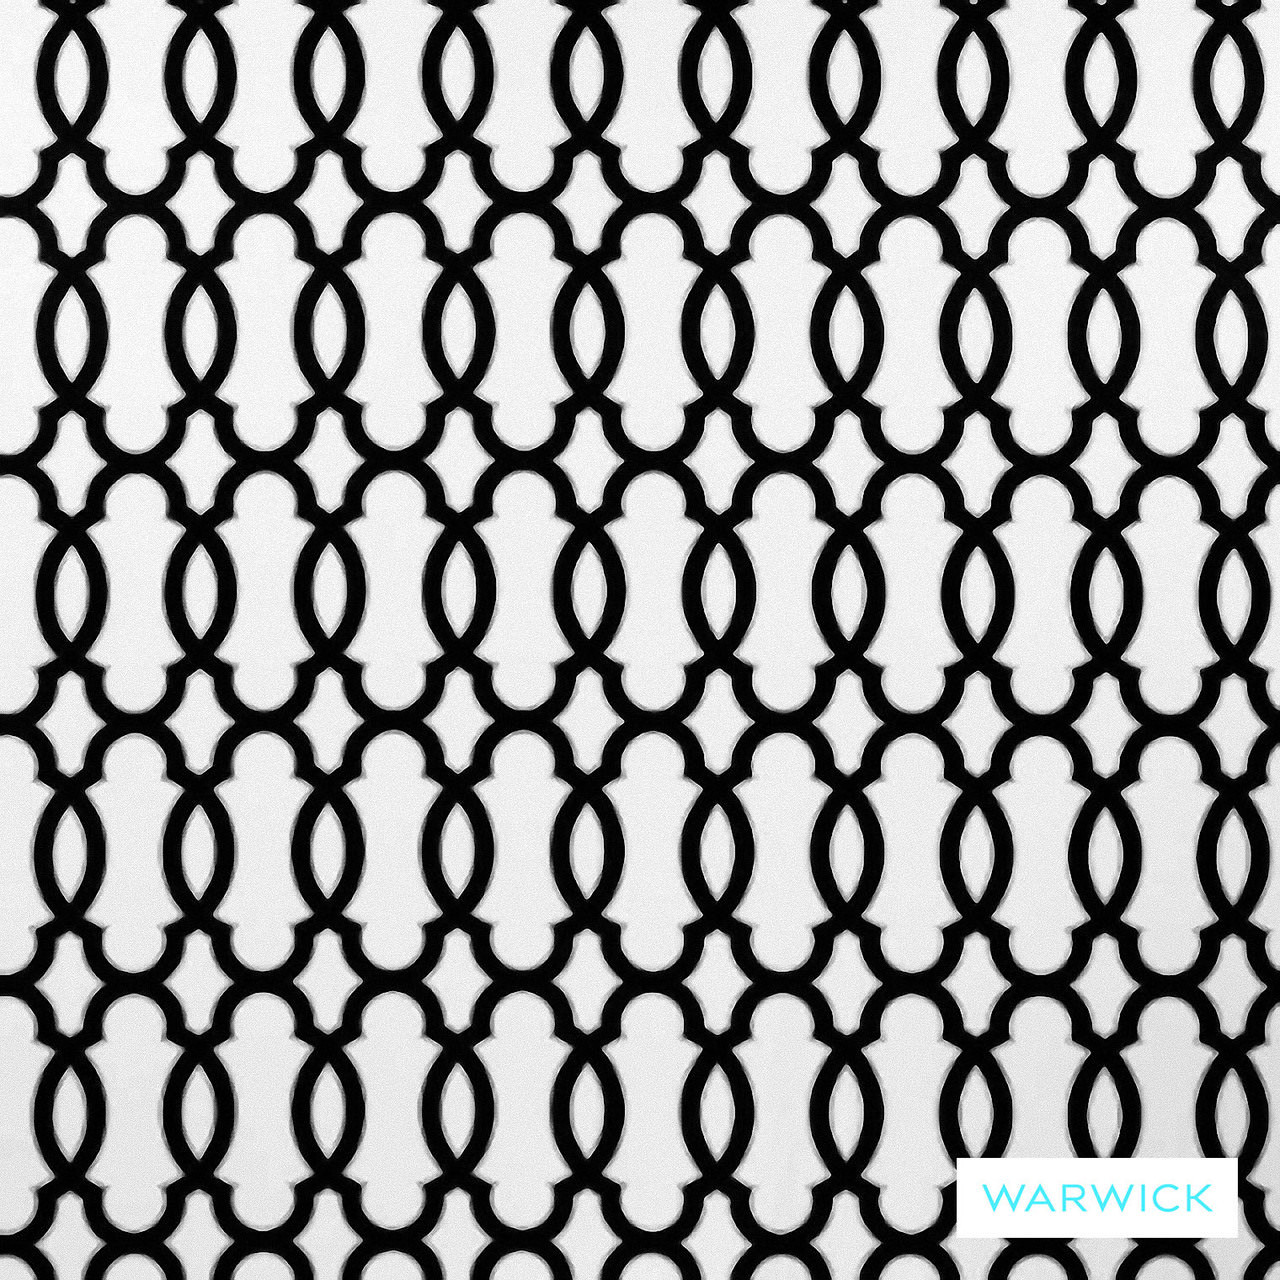 Warwick Monochrome Gracia Platinum  | Curtain Fabric - Australian Made, Grey, Black - Charcoal, Contemporary, Geometric, Mediterranean, Moroccan, Quatrefoil, Synthetic, Traditional, Washable